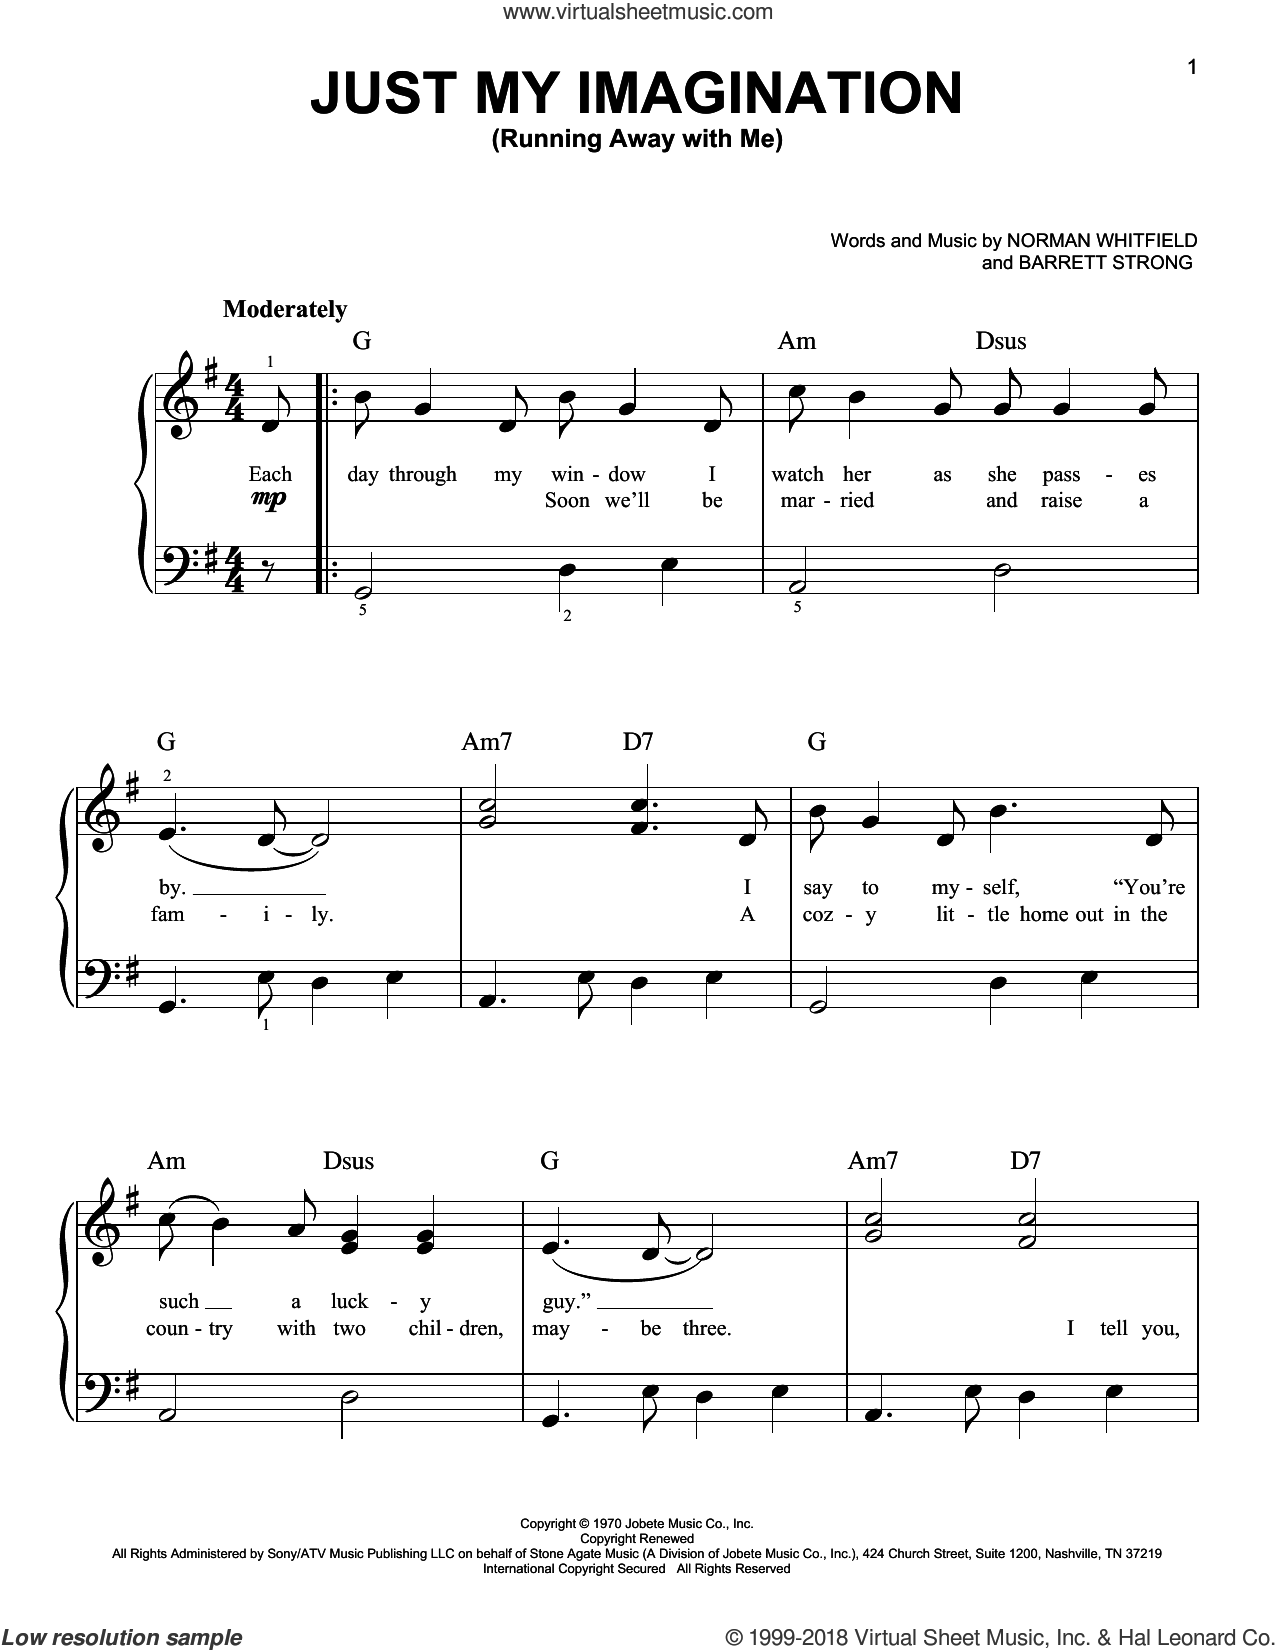 Just My Imagination (Running Away With Me) sheet music for piano solo by Norman Whitfield